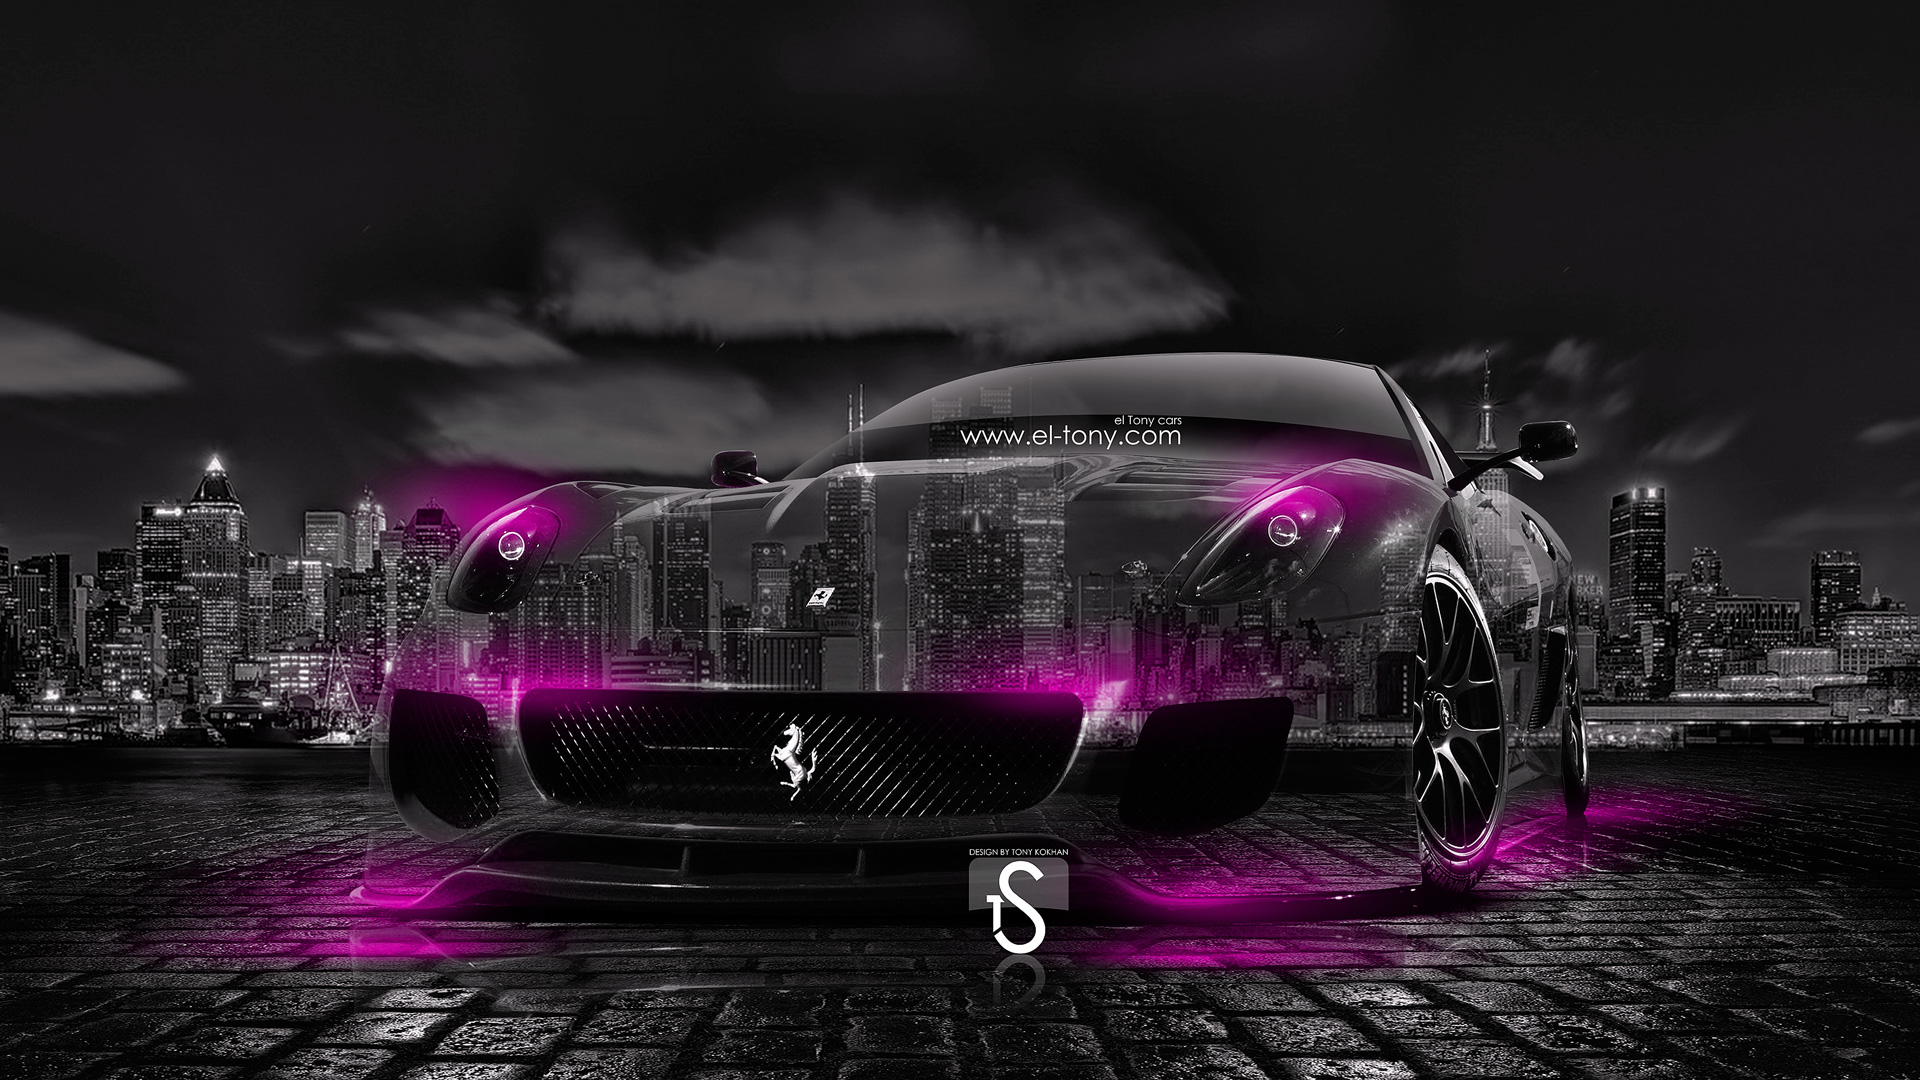 Ferrari-599-Crystal-City-Car-2014-Pink-Neon-design-by-Tony-Kokhan-[www.el-tony.com]